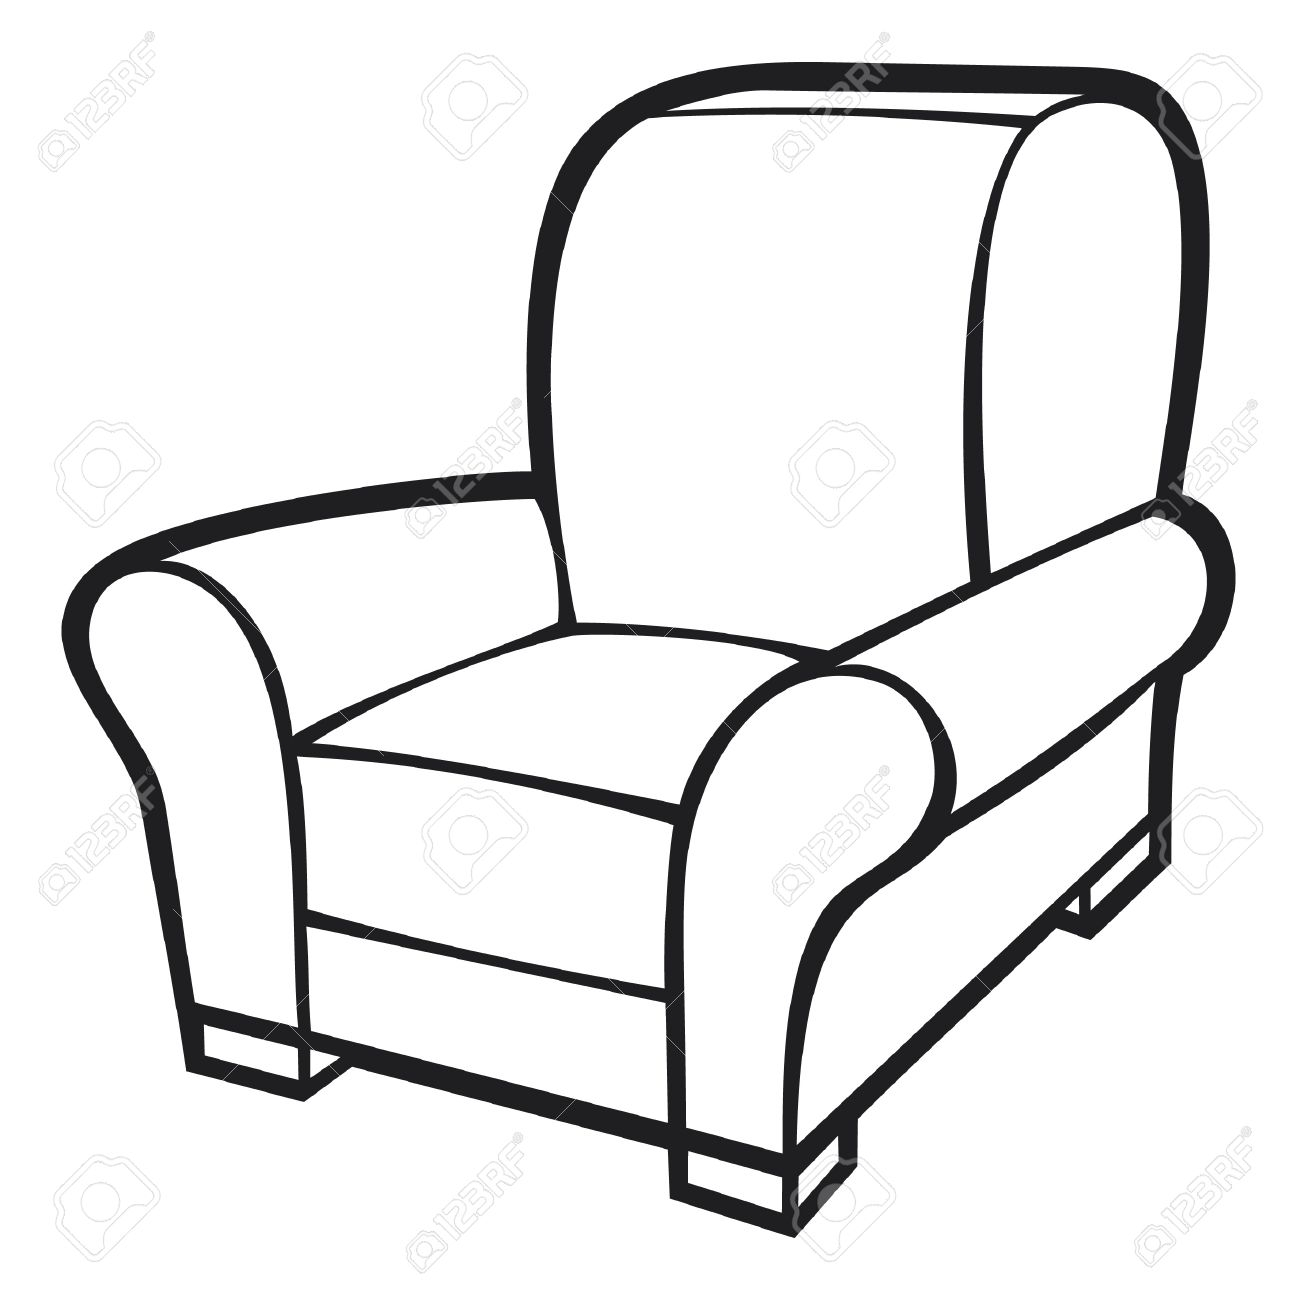 Black and white clipart chair picture freeuse Furniture Clipart Black And White | Free download best Furniture ... picture freeuse